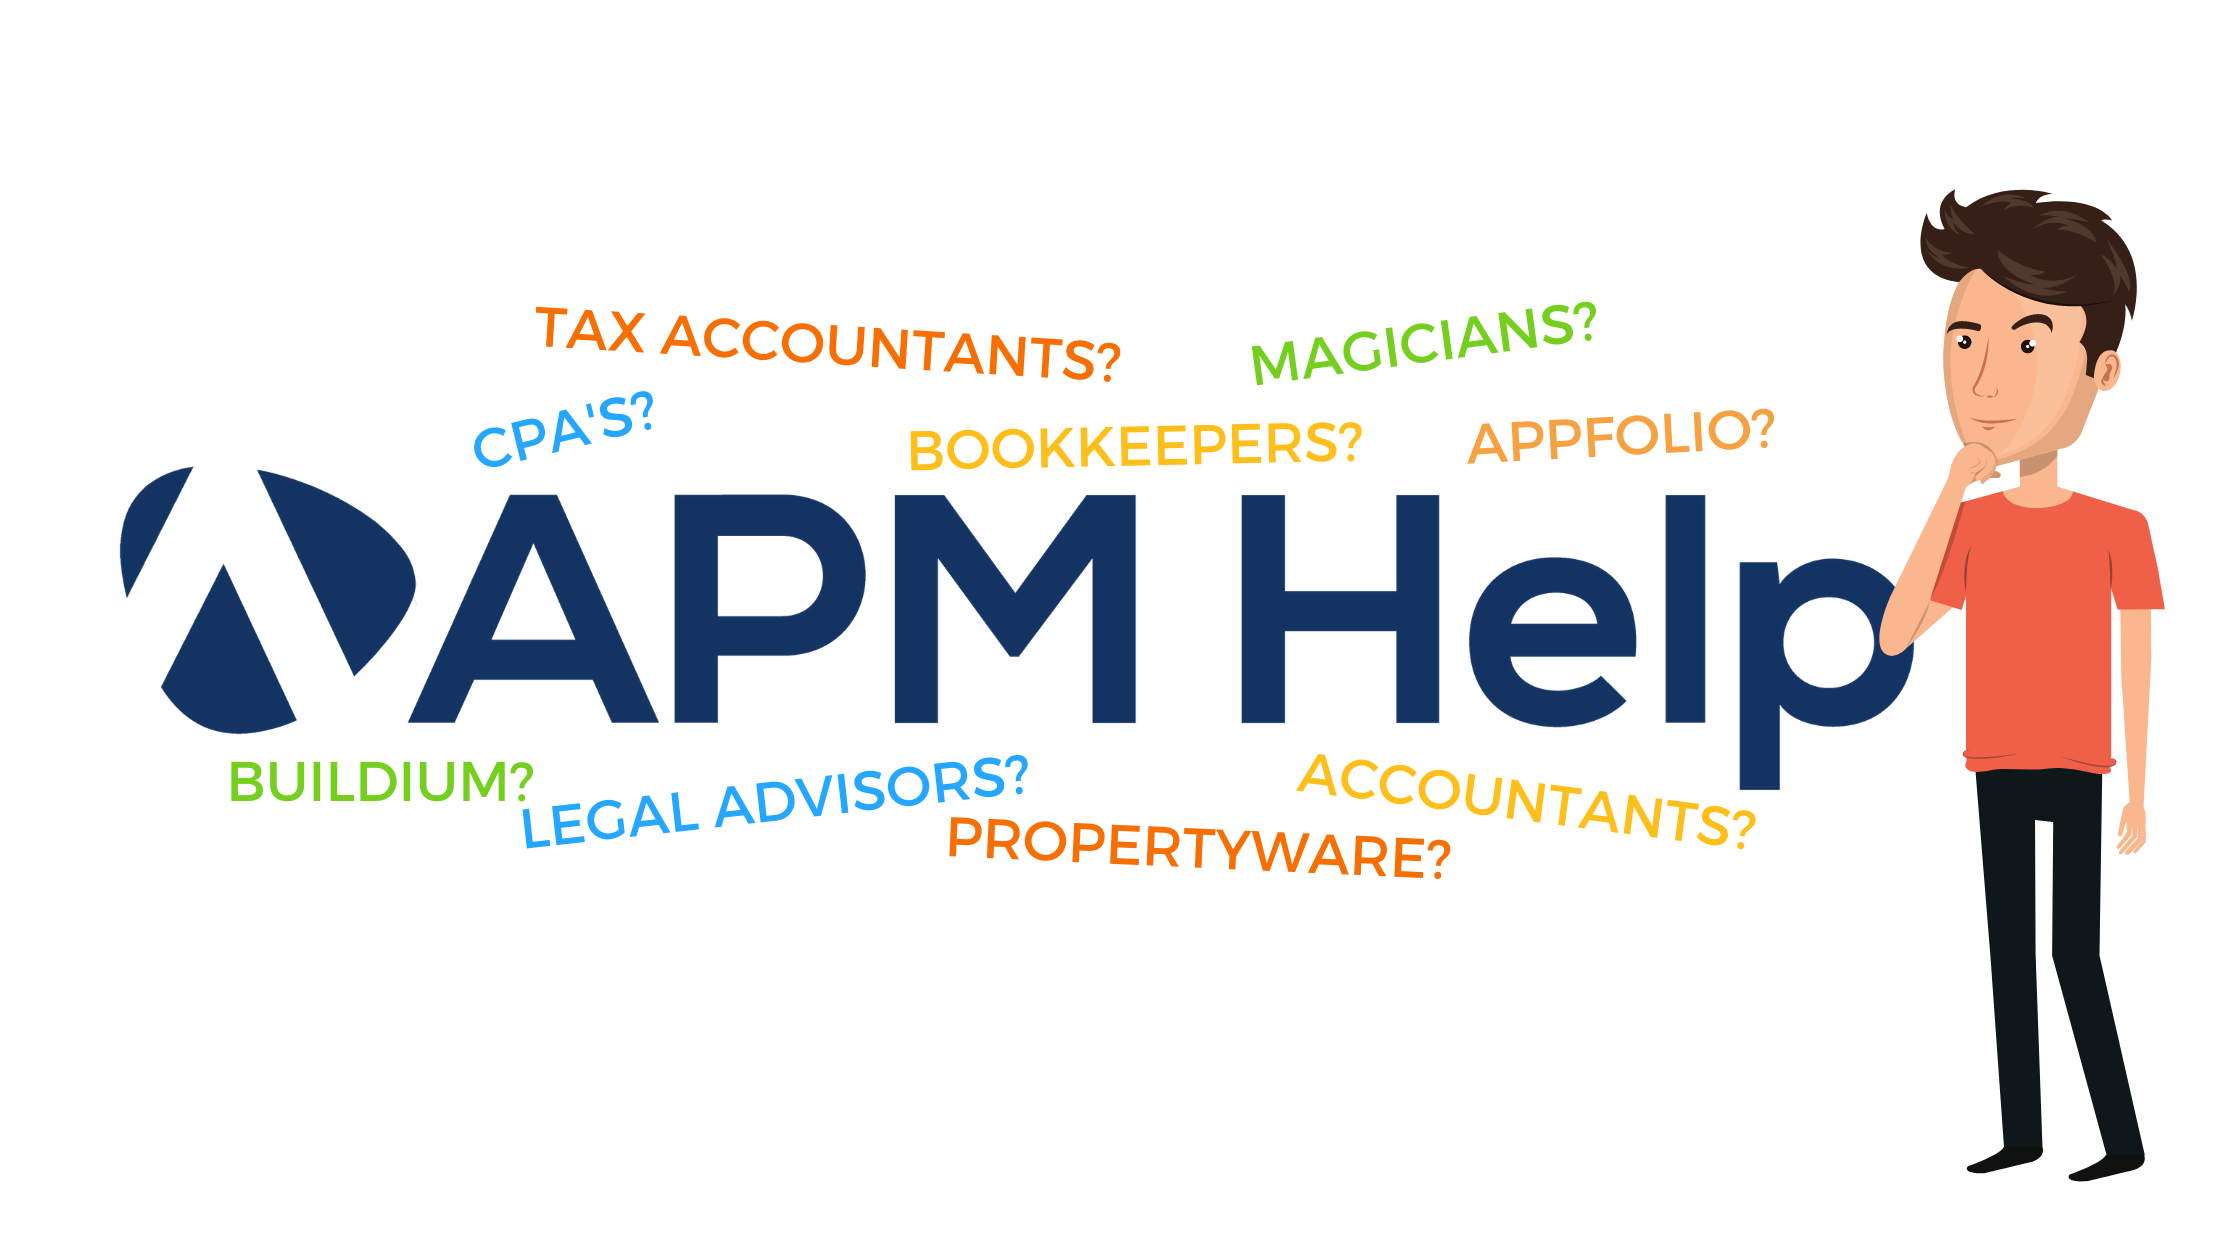 What does APM Help do, exactly?